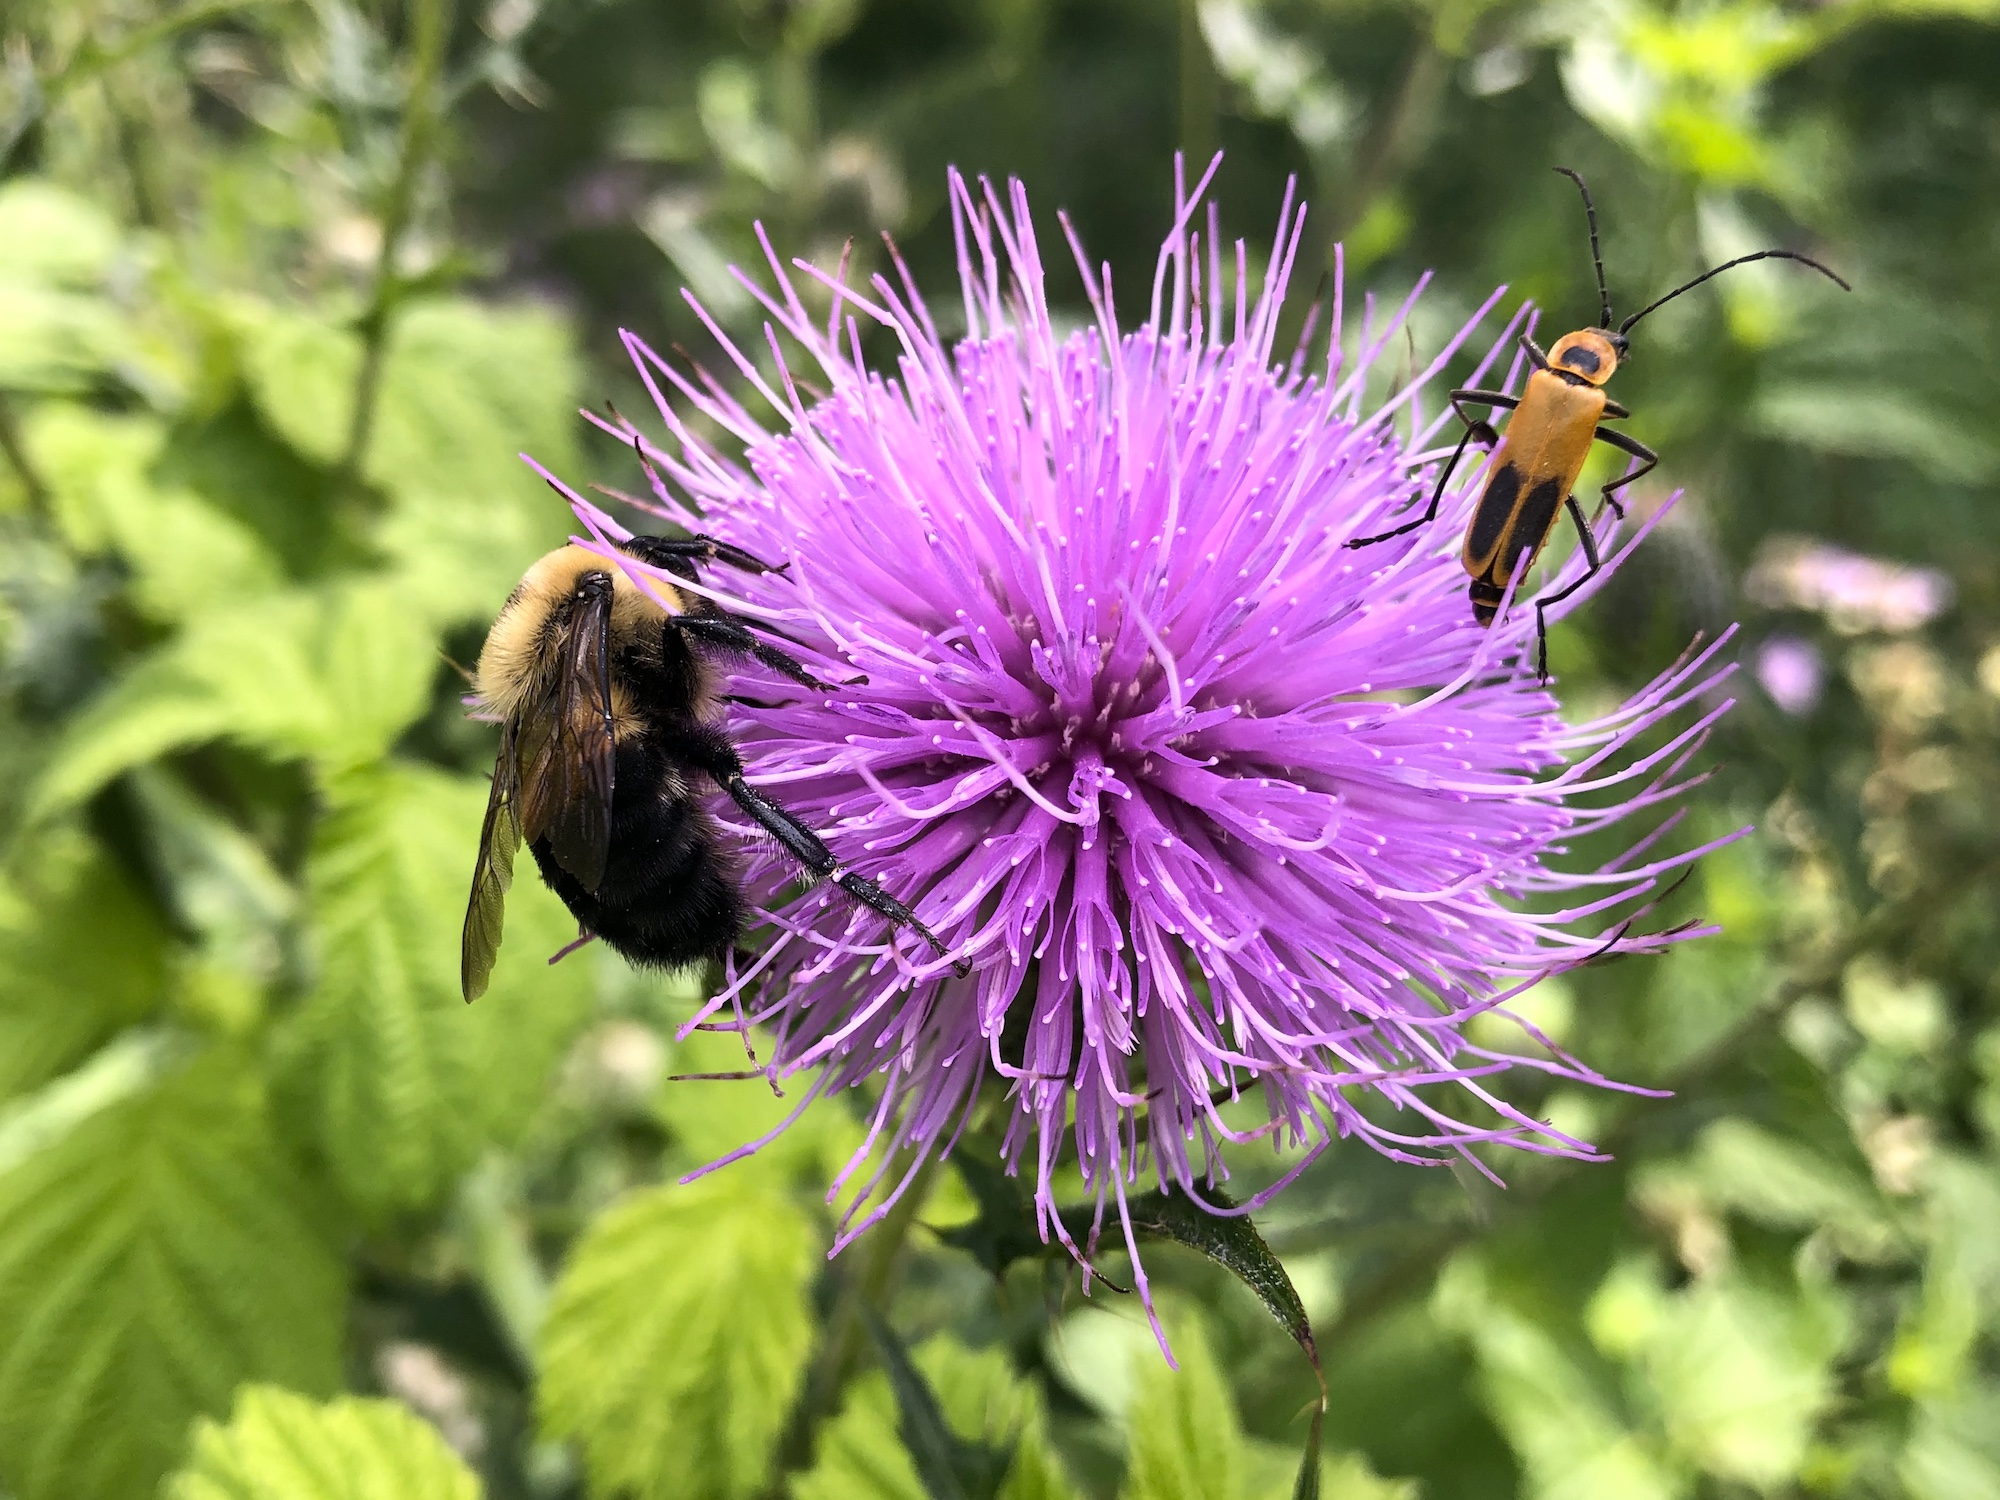 Bumblebee on Thistle on August 4, 2020.